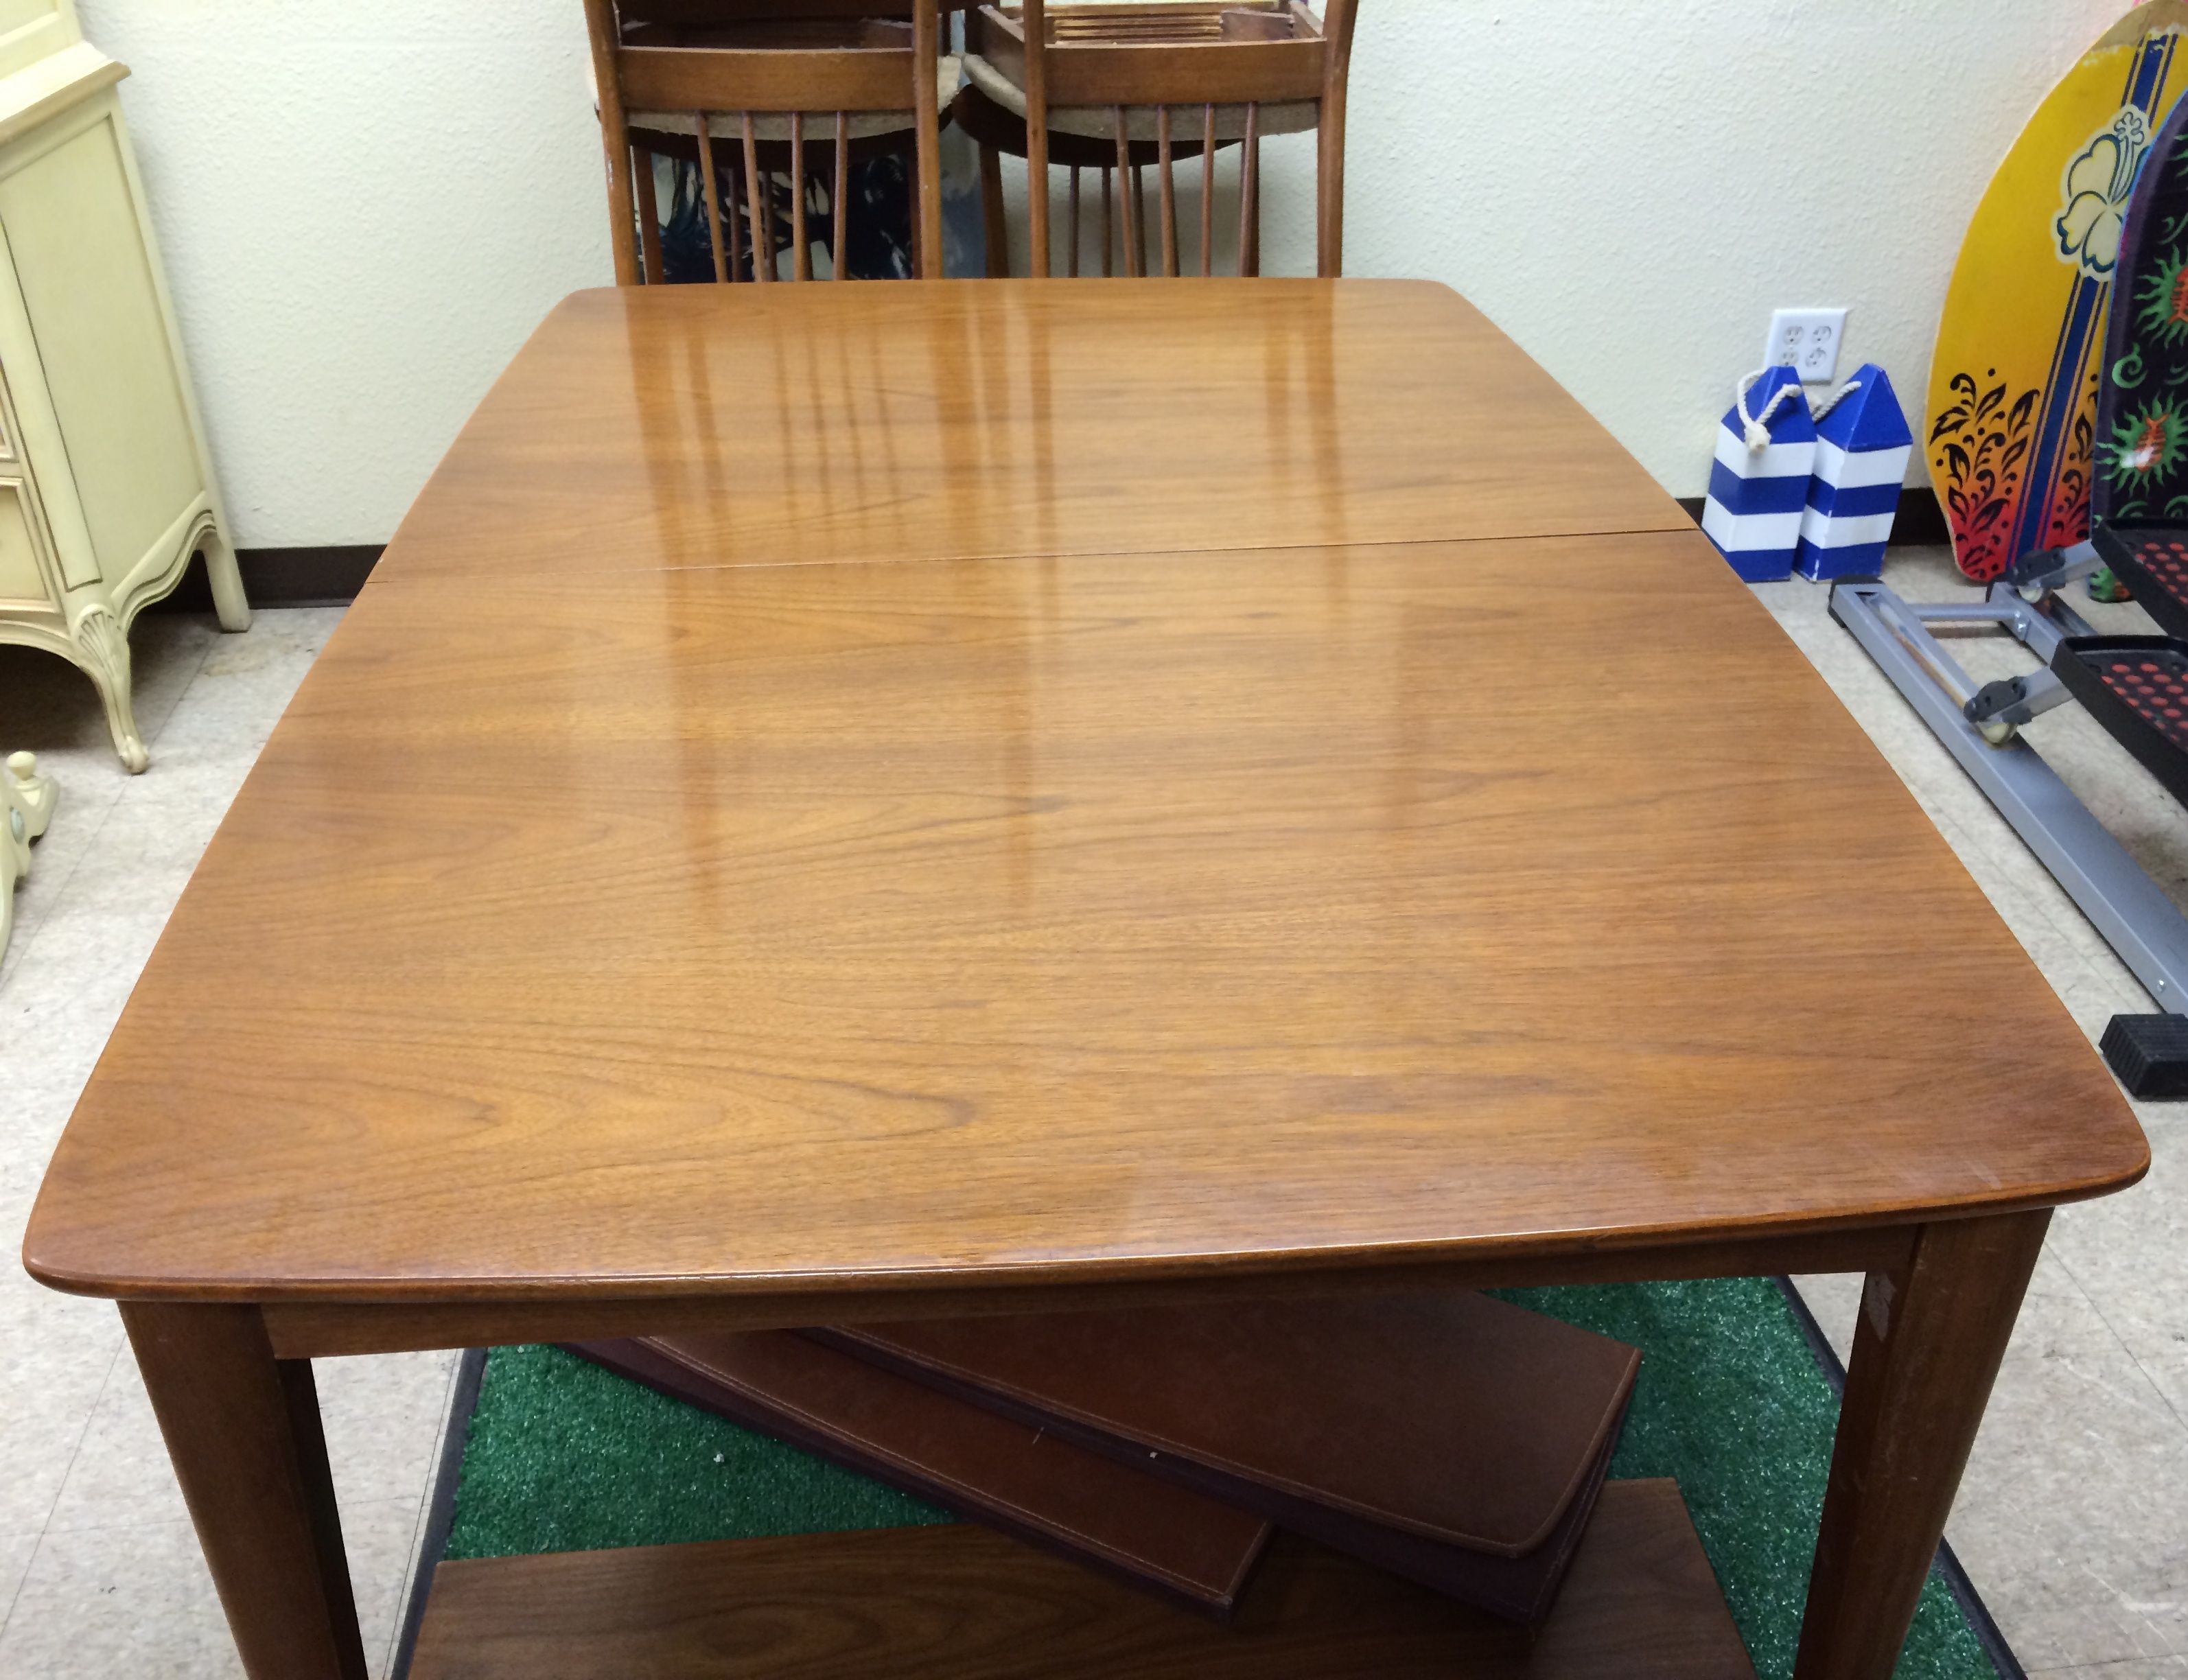 Superbe Walter Of Wabash Dinette Set (photo 1) Extremely Rare Walter Of Wabash Mid  Century